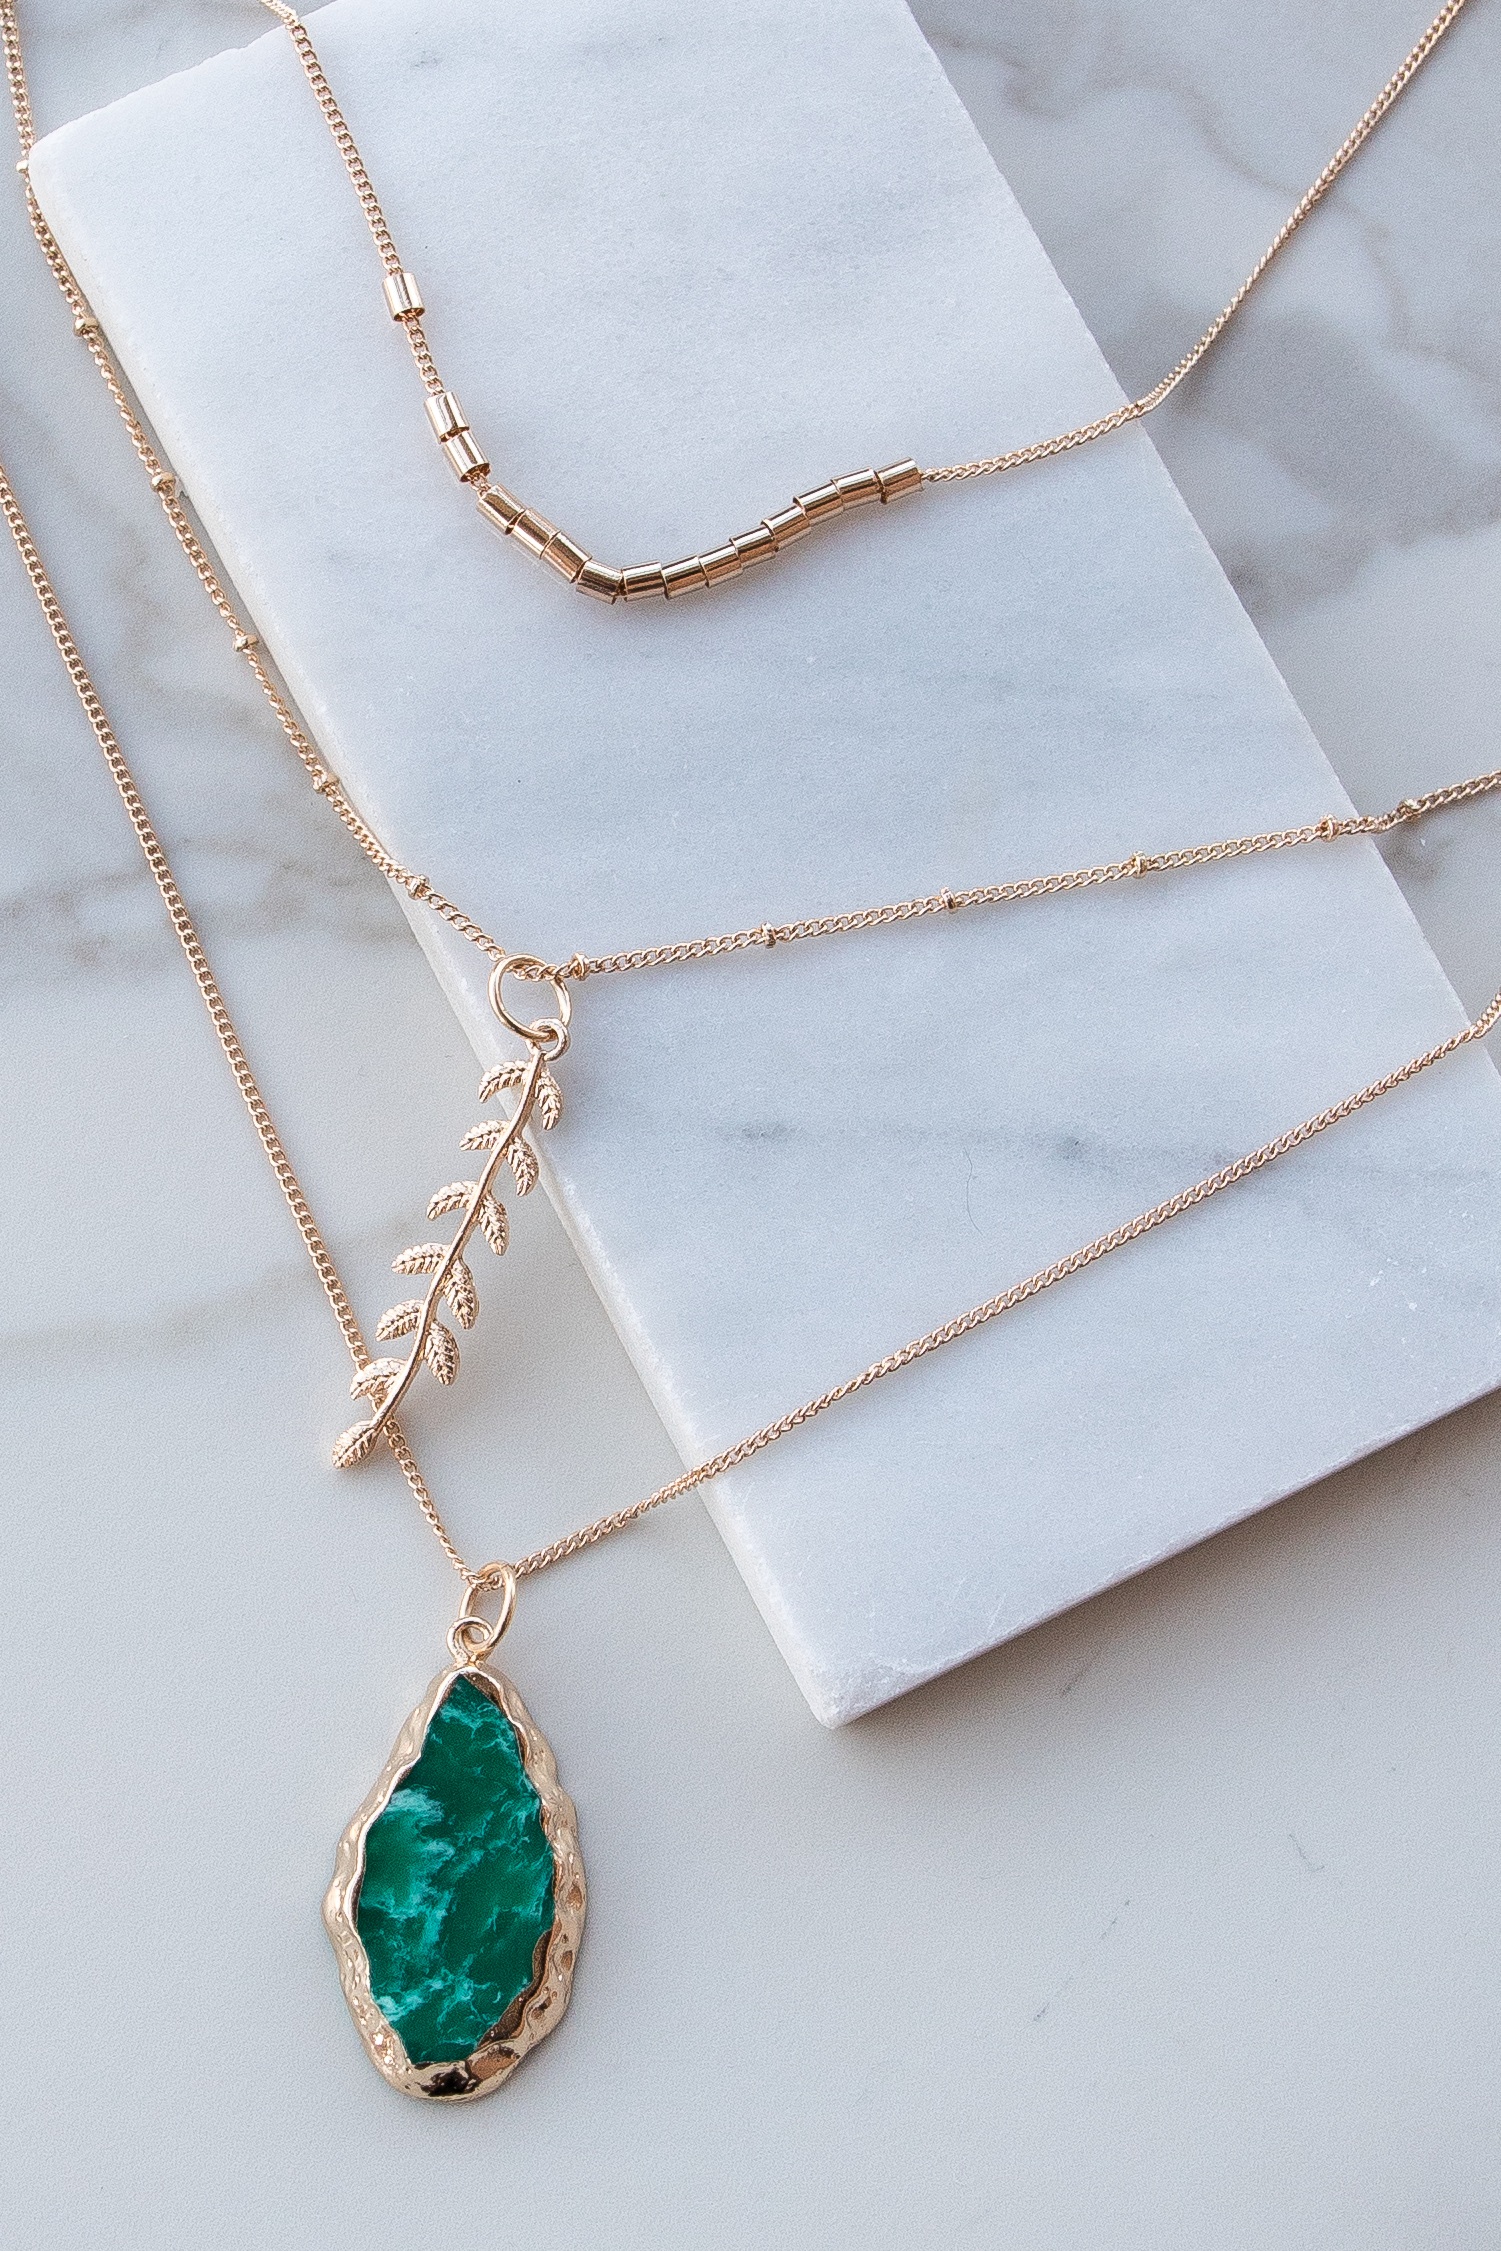 Gold Layered Necklace with Leaf and Turquoise Stone Pendant